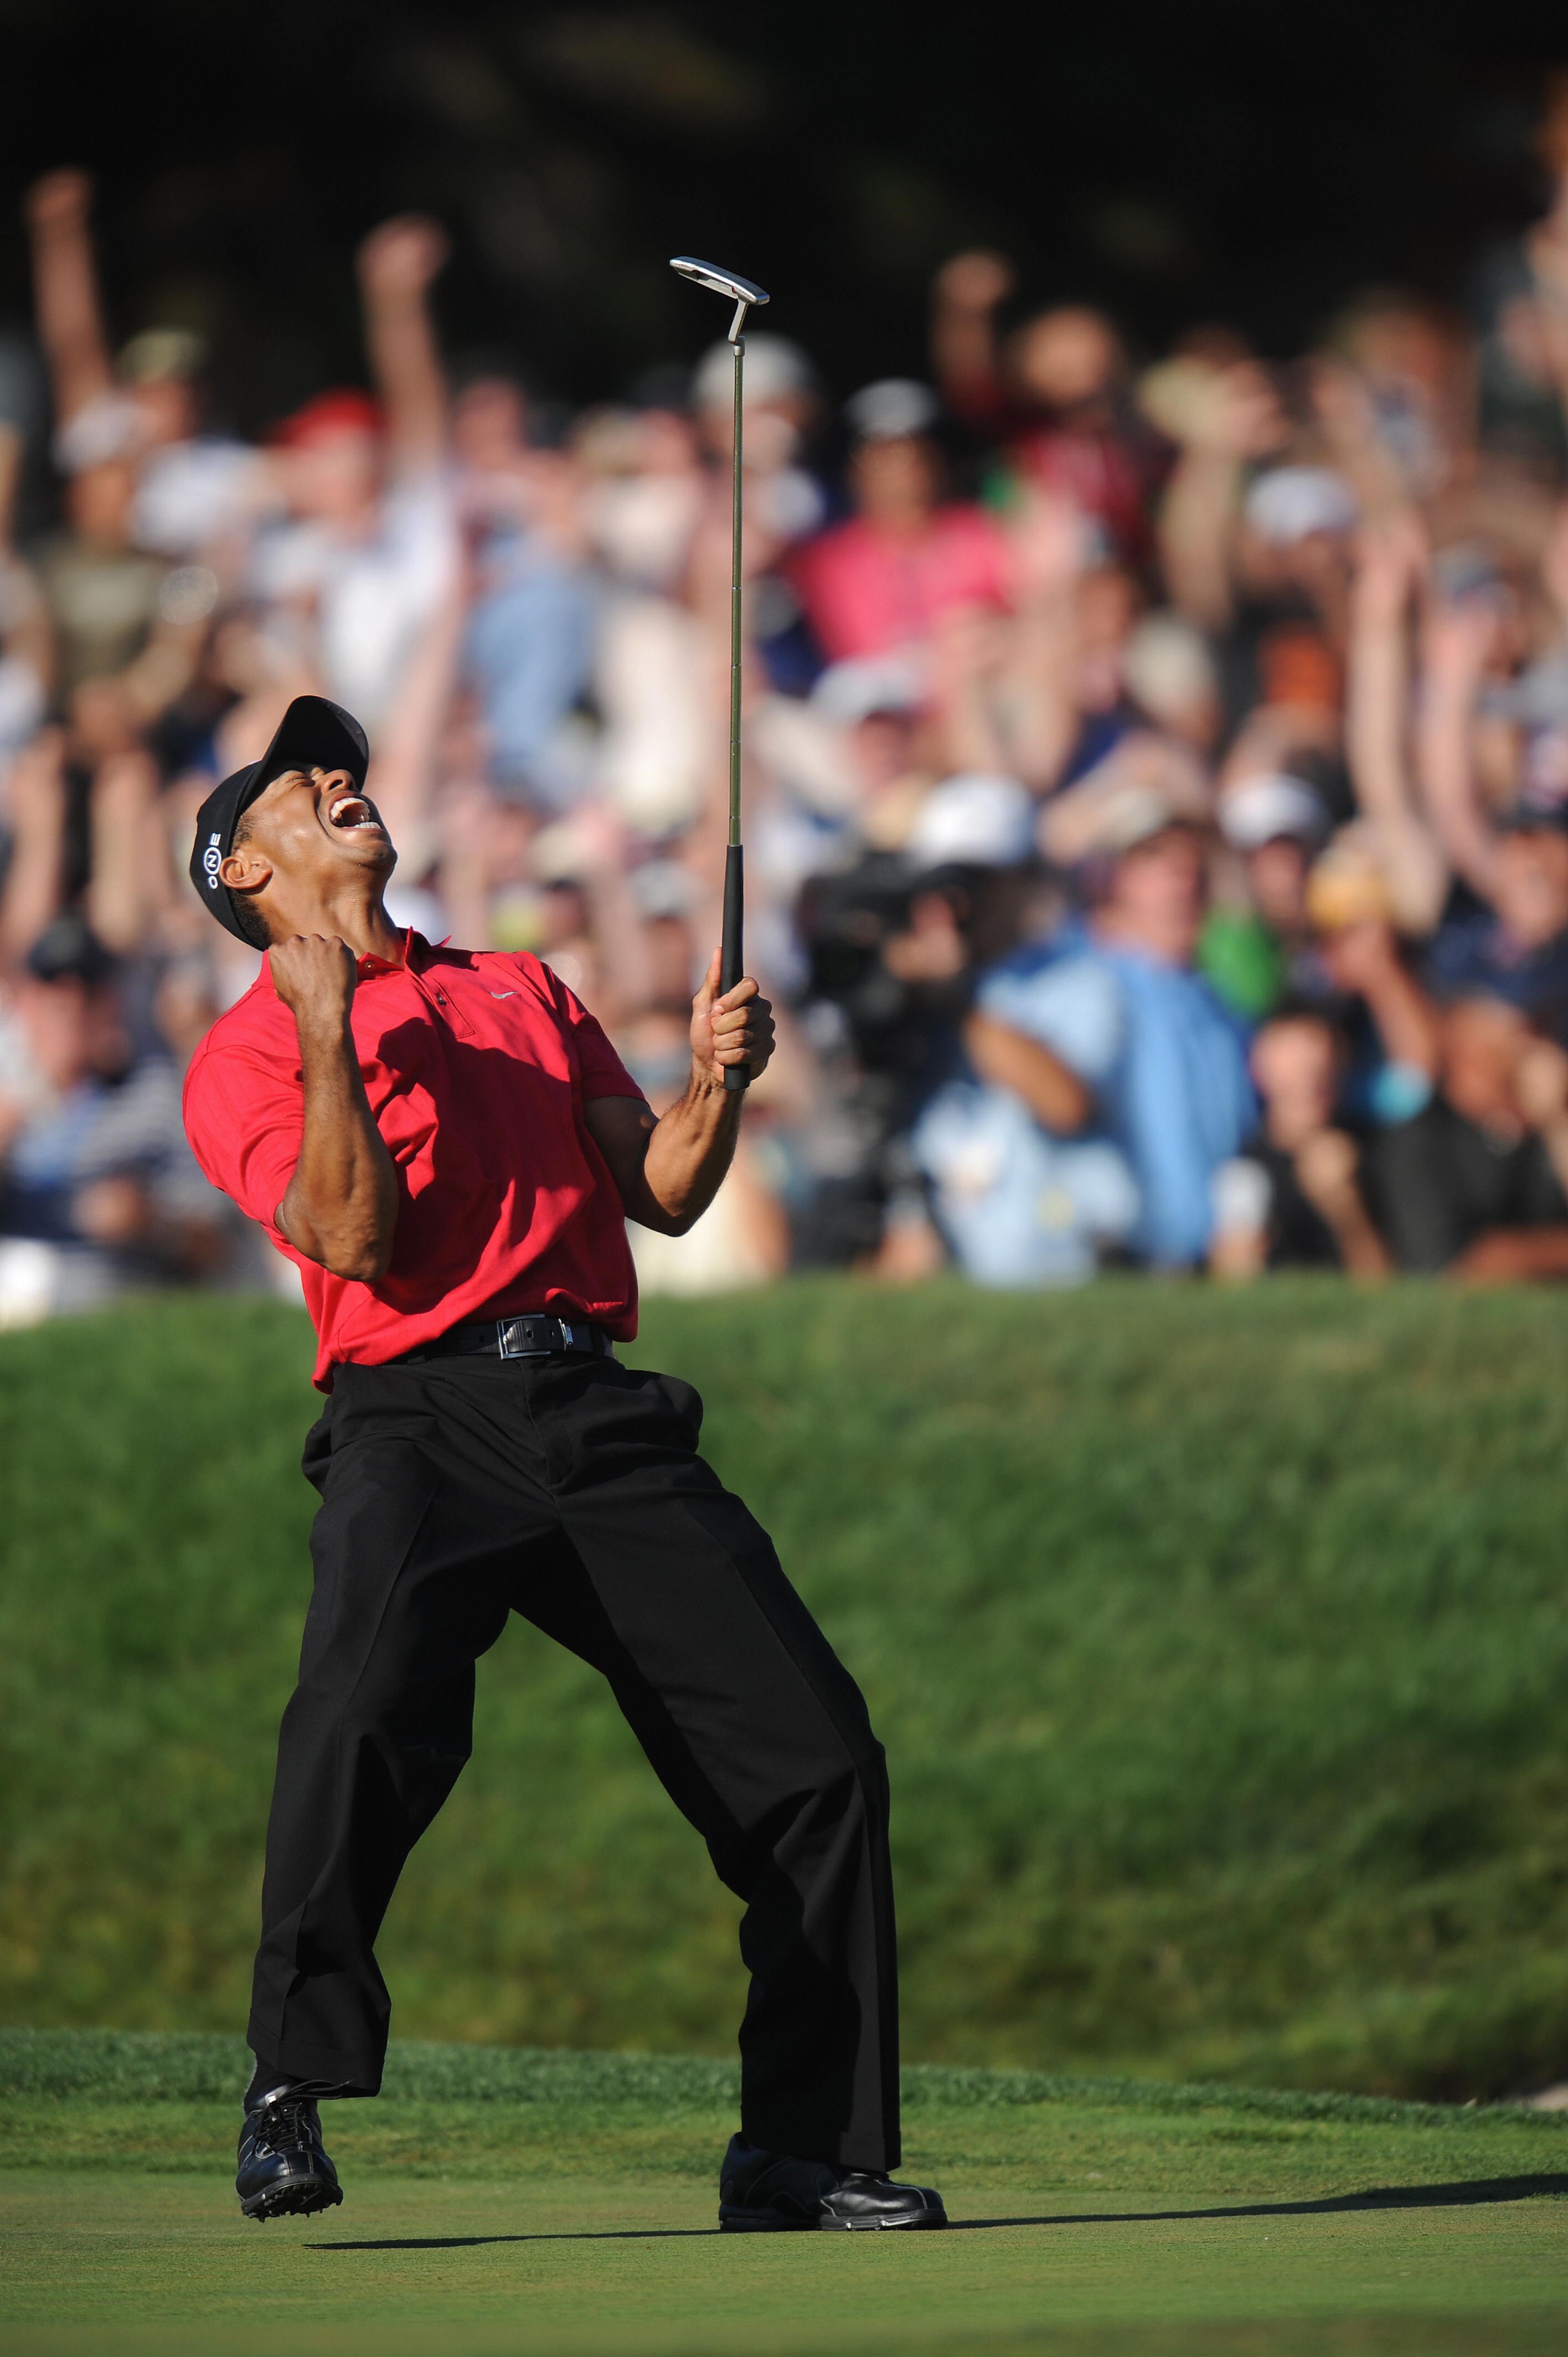 Tiger Woods outlasted an full-day playoff against Rocco Mediate to claim his 14th major championship at the 2008 U.S. Open.